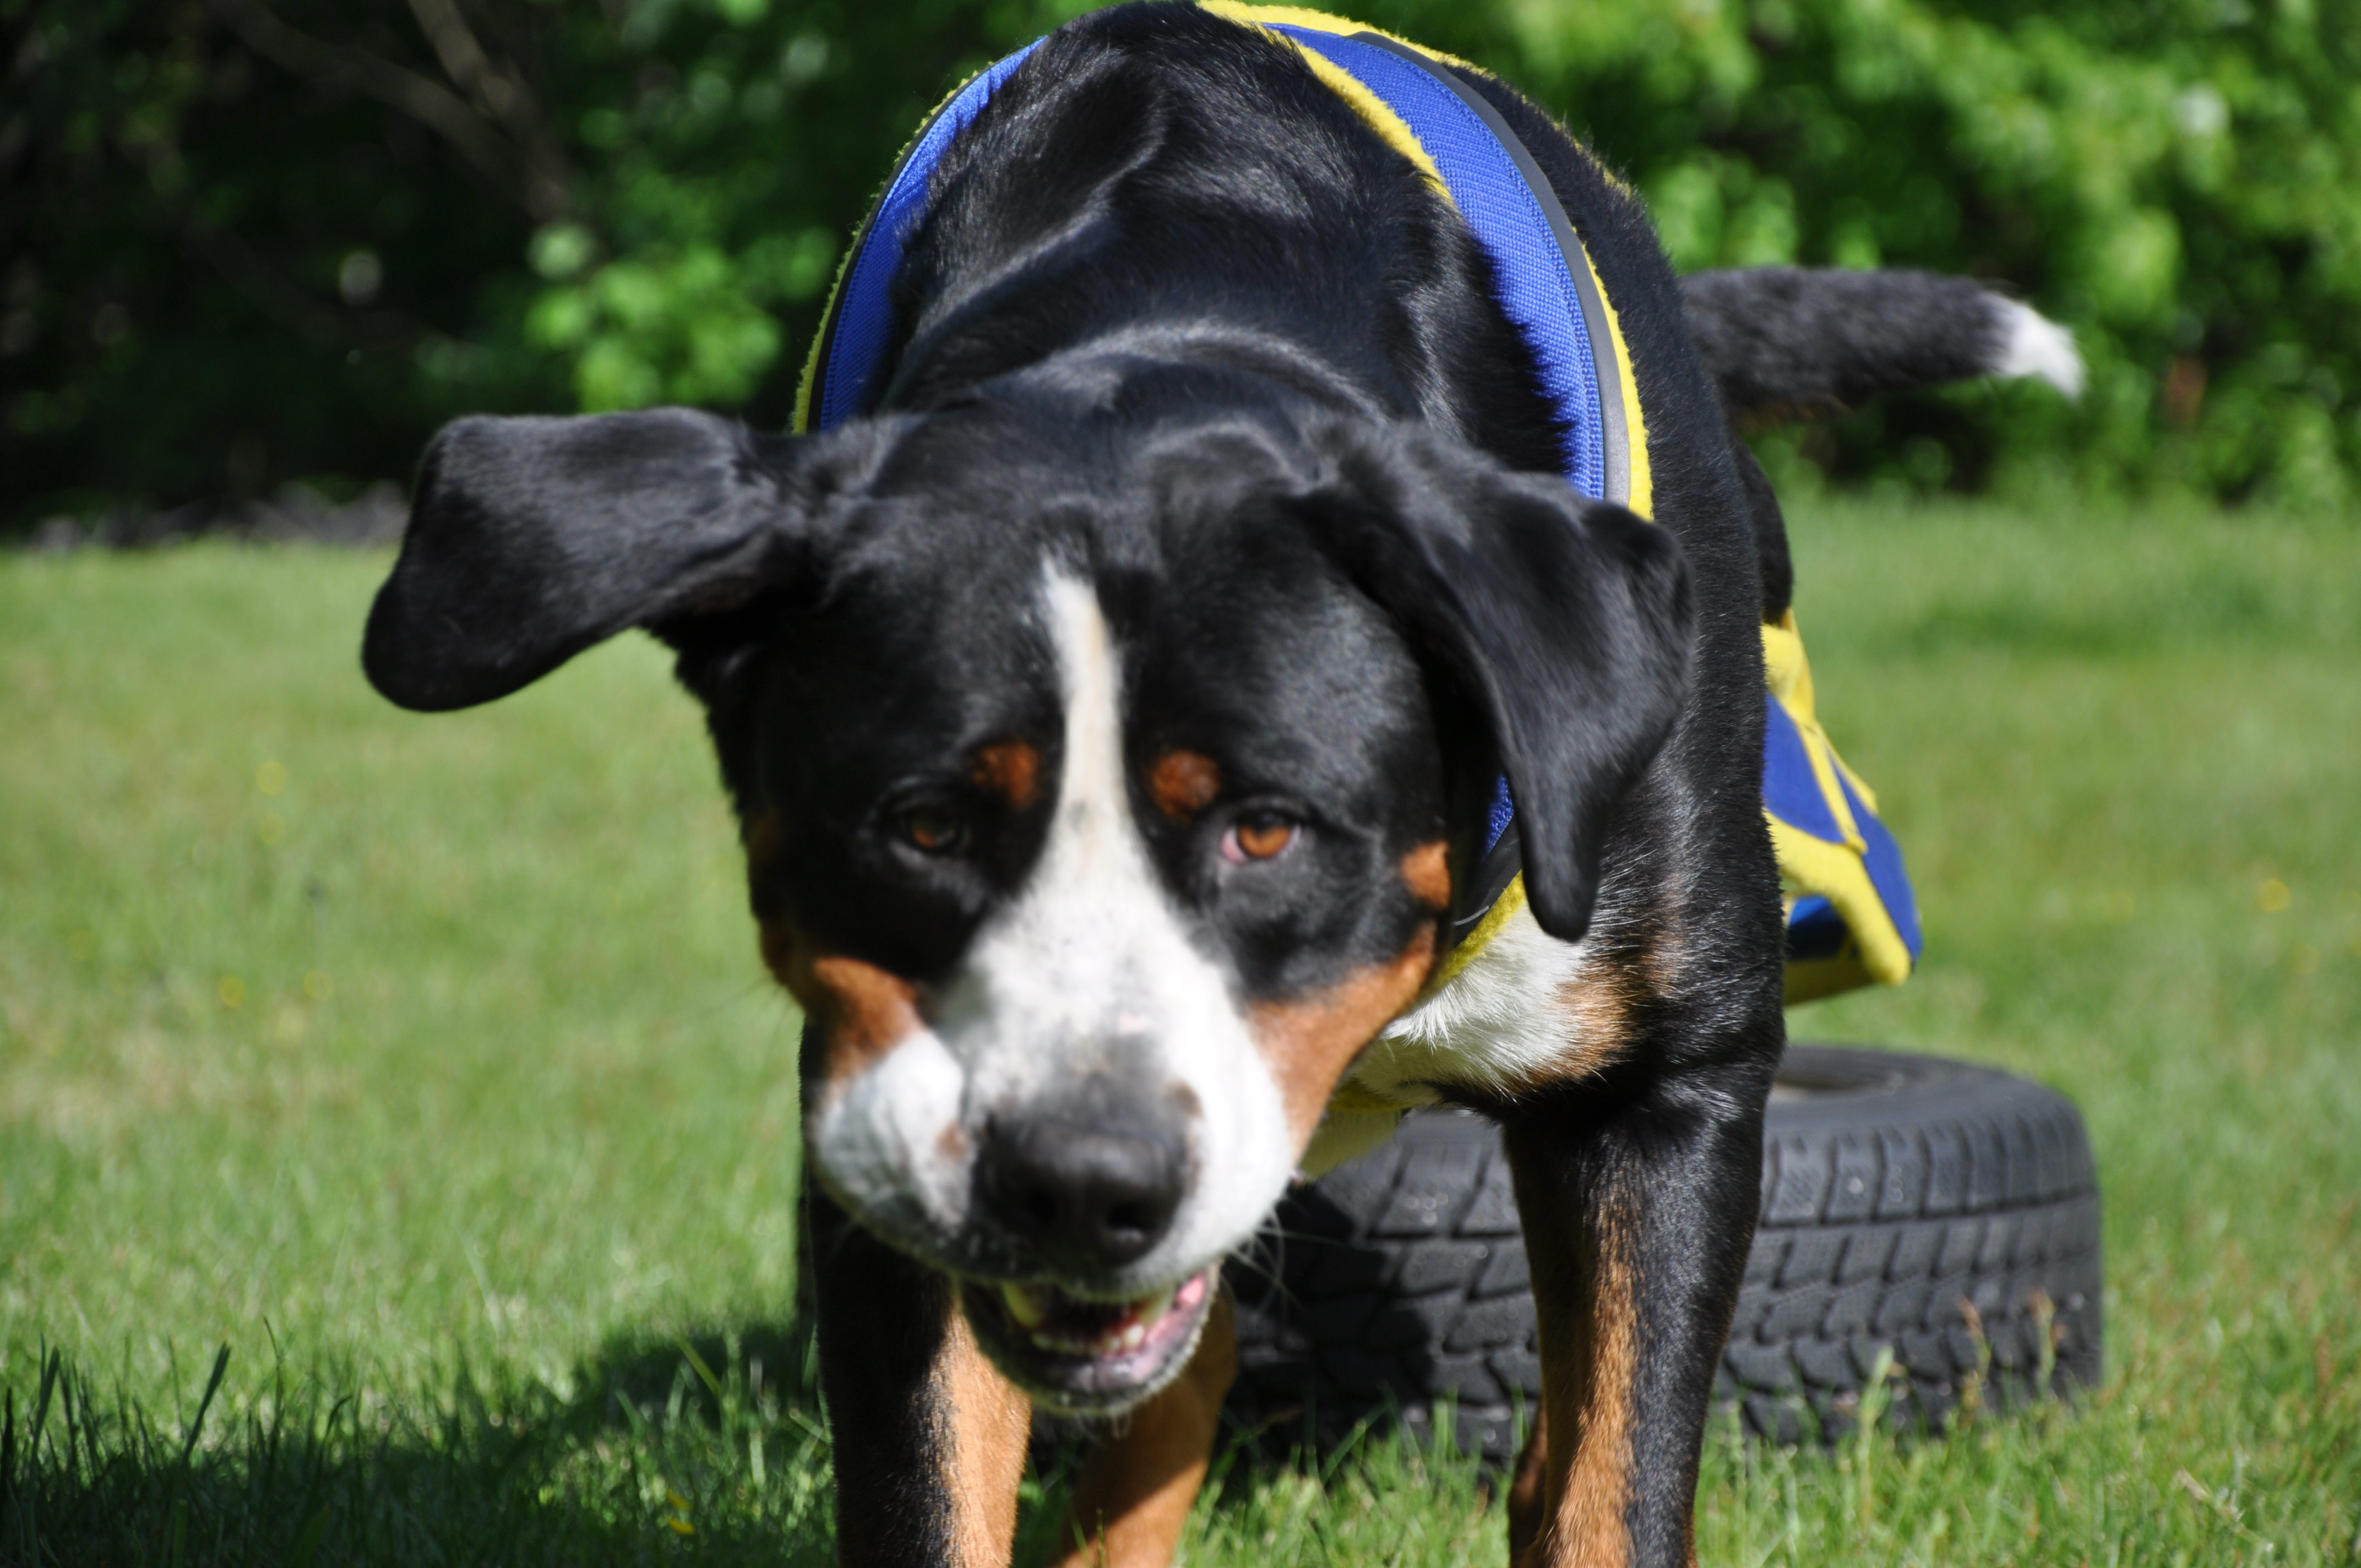 Greater swiss mountain dog pulling - photo#9